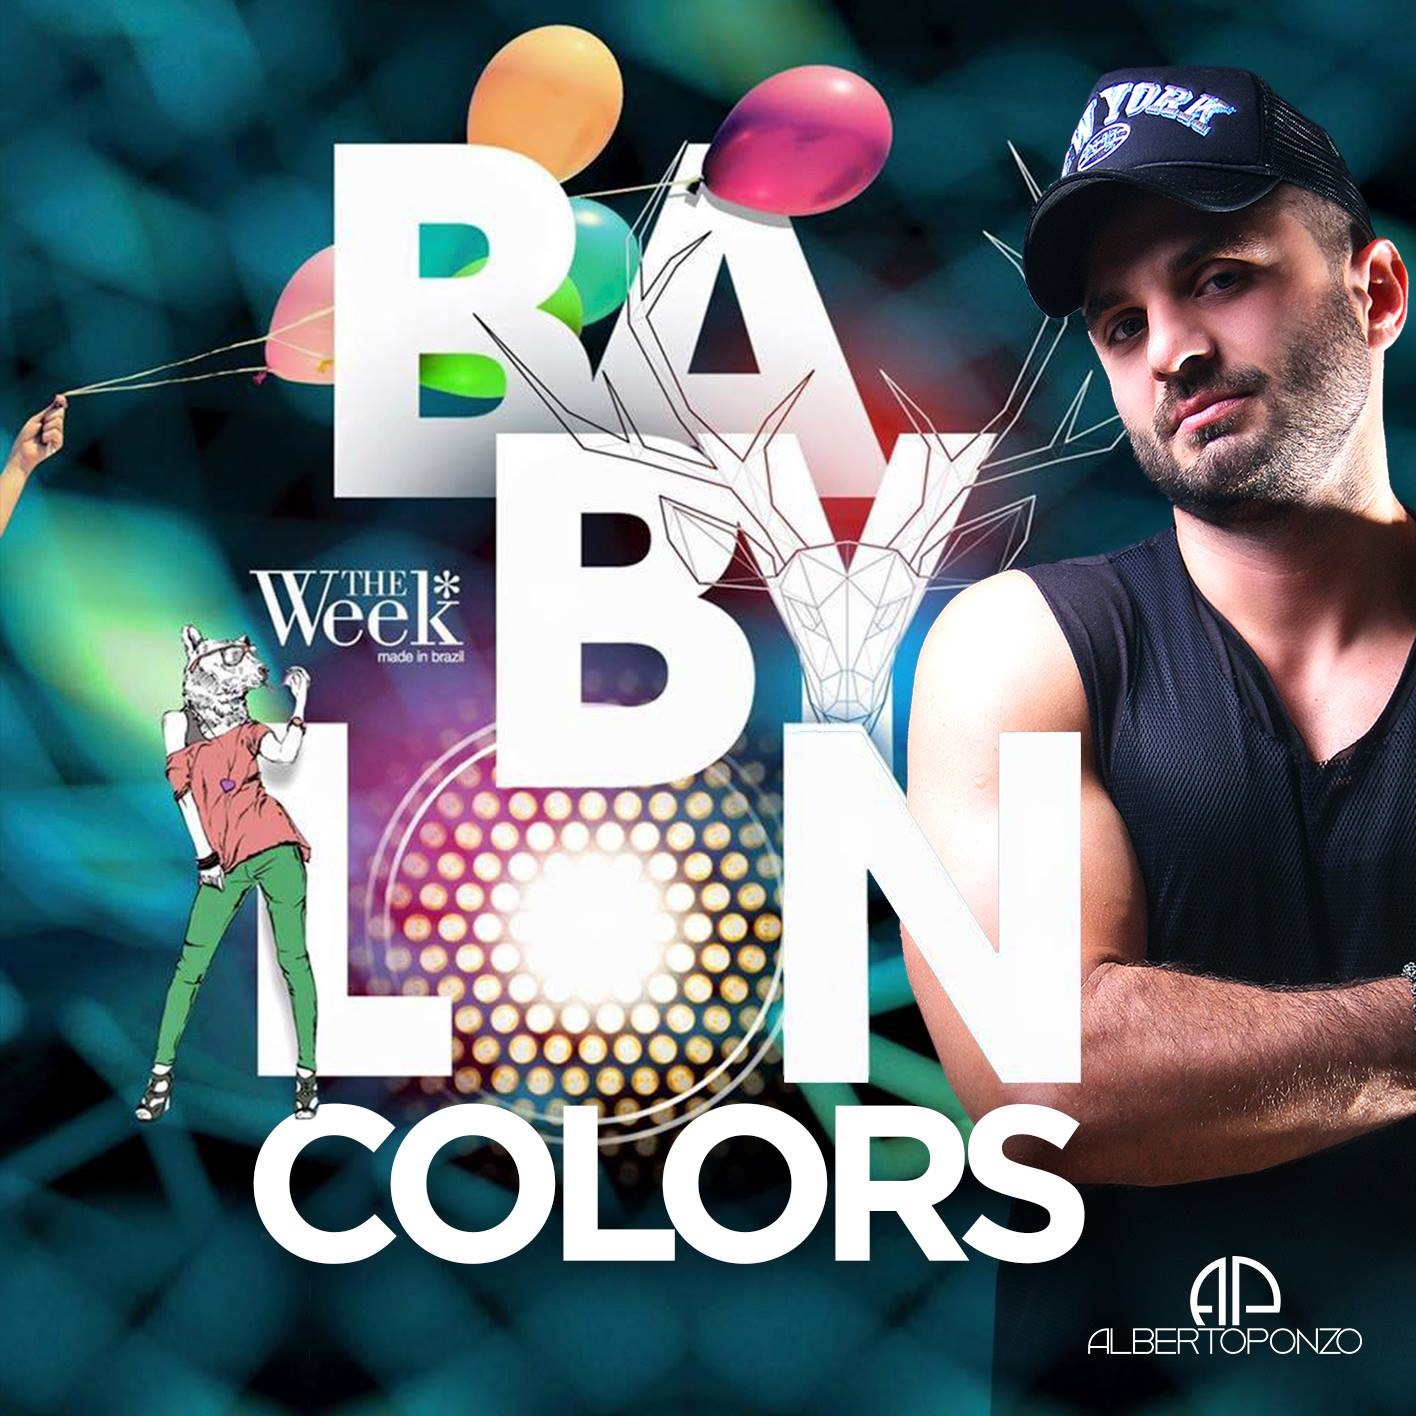 DJ Alberto Ponzo - SET COLORS TWSP